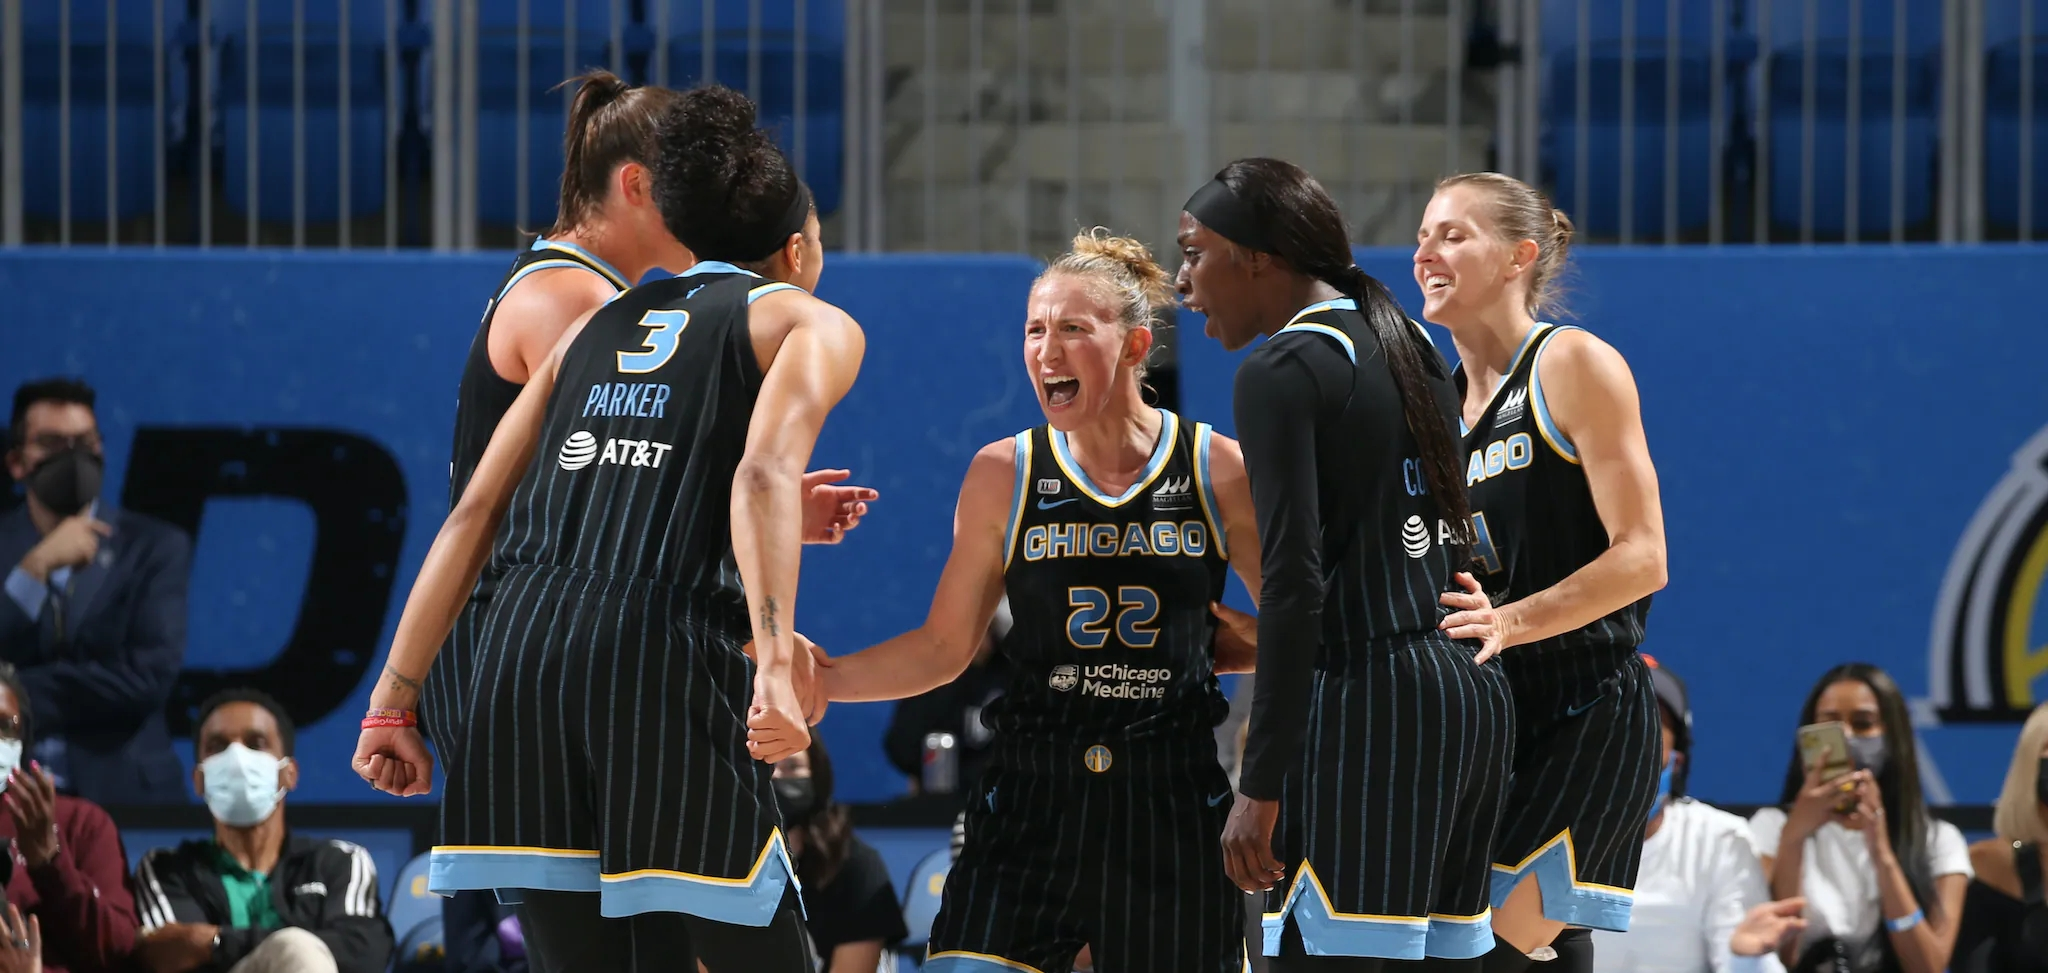 Chicago Sky tops Phoenix Mercury 86-50 for Game 3 victory, takes 2-1 series lead